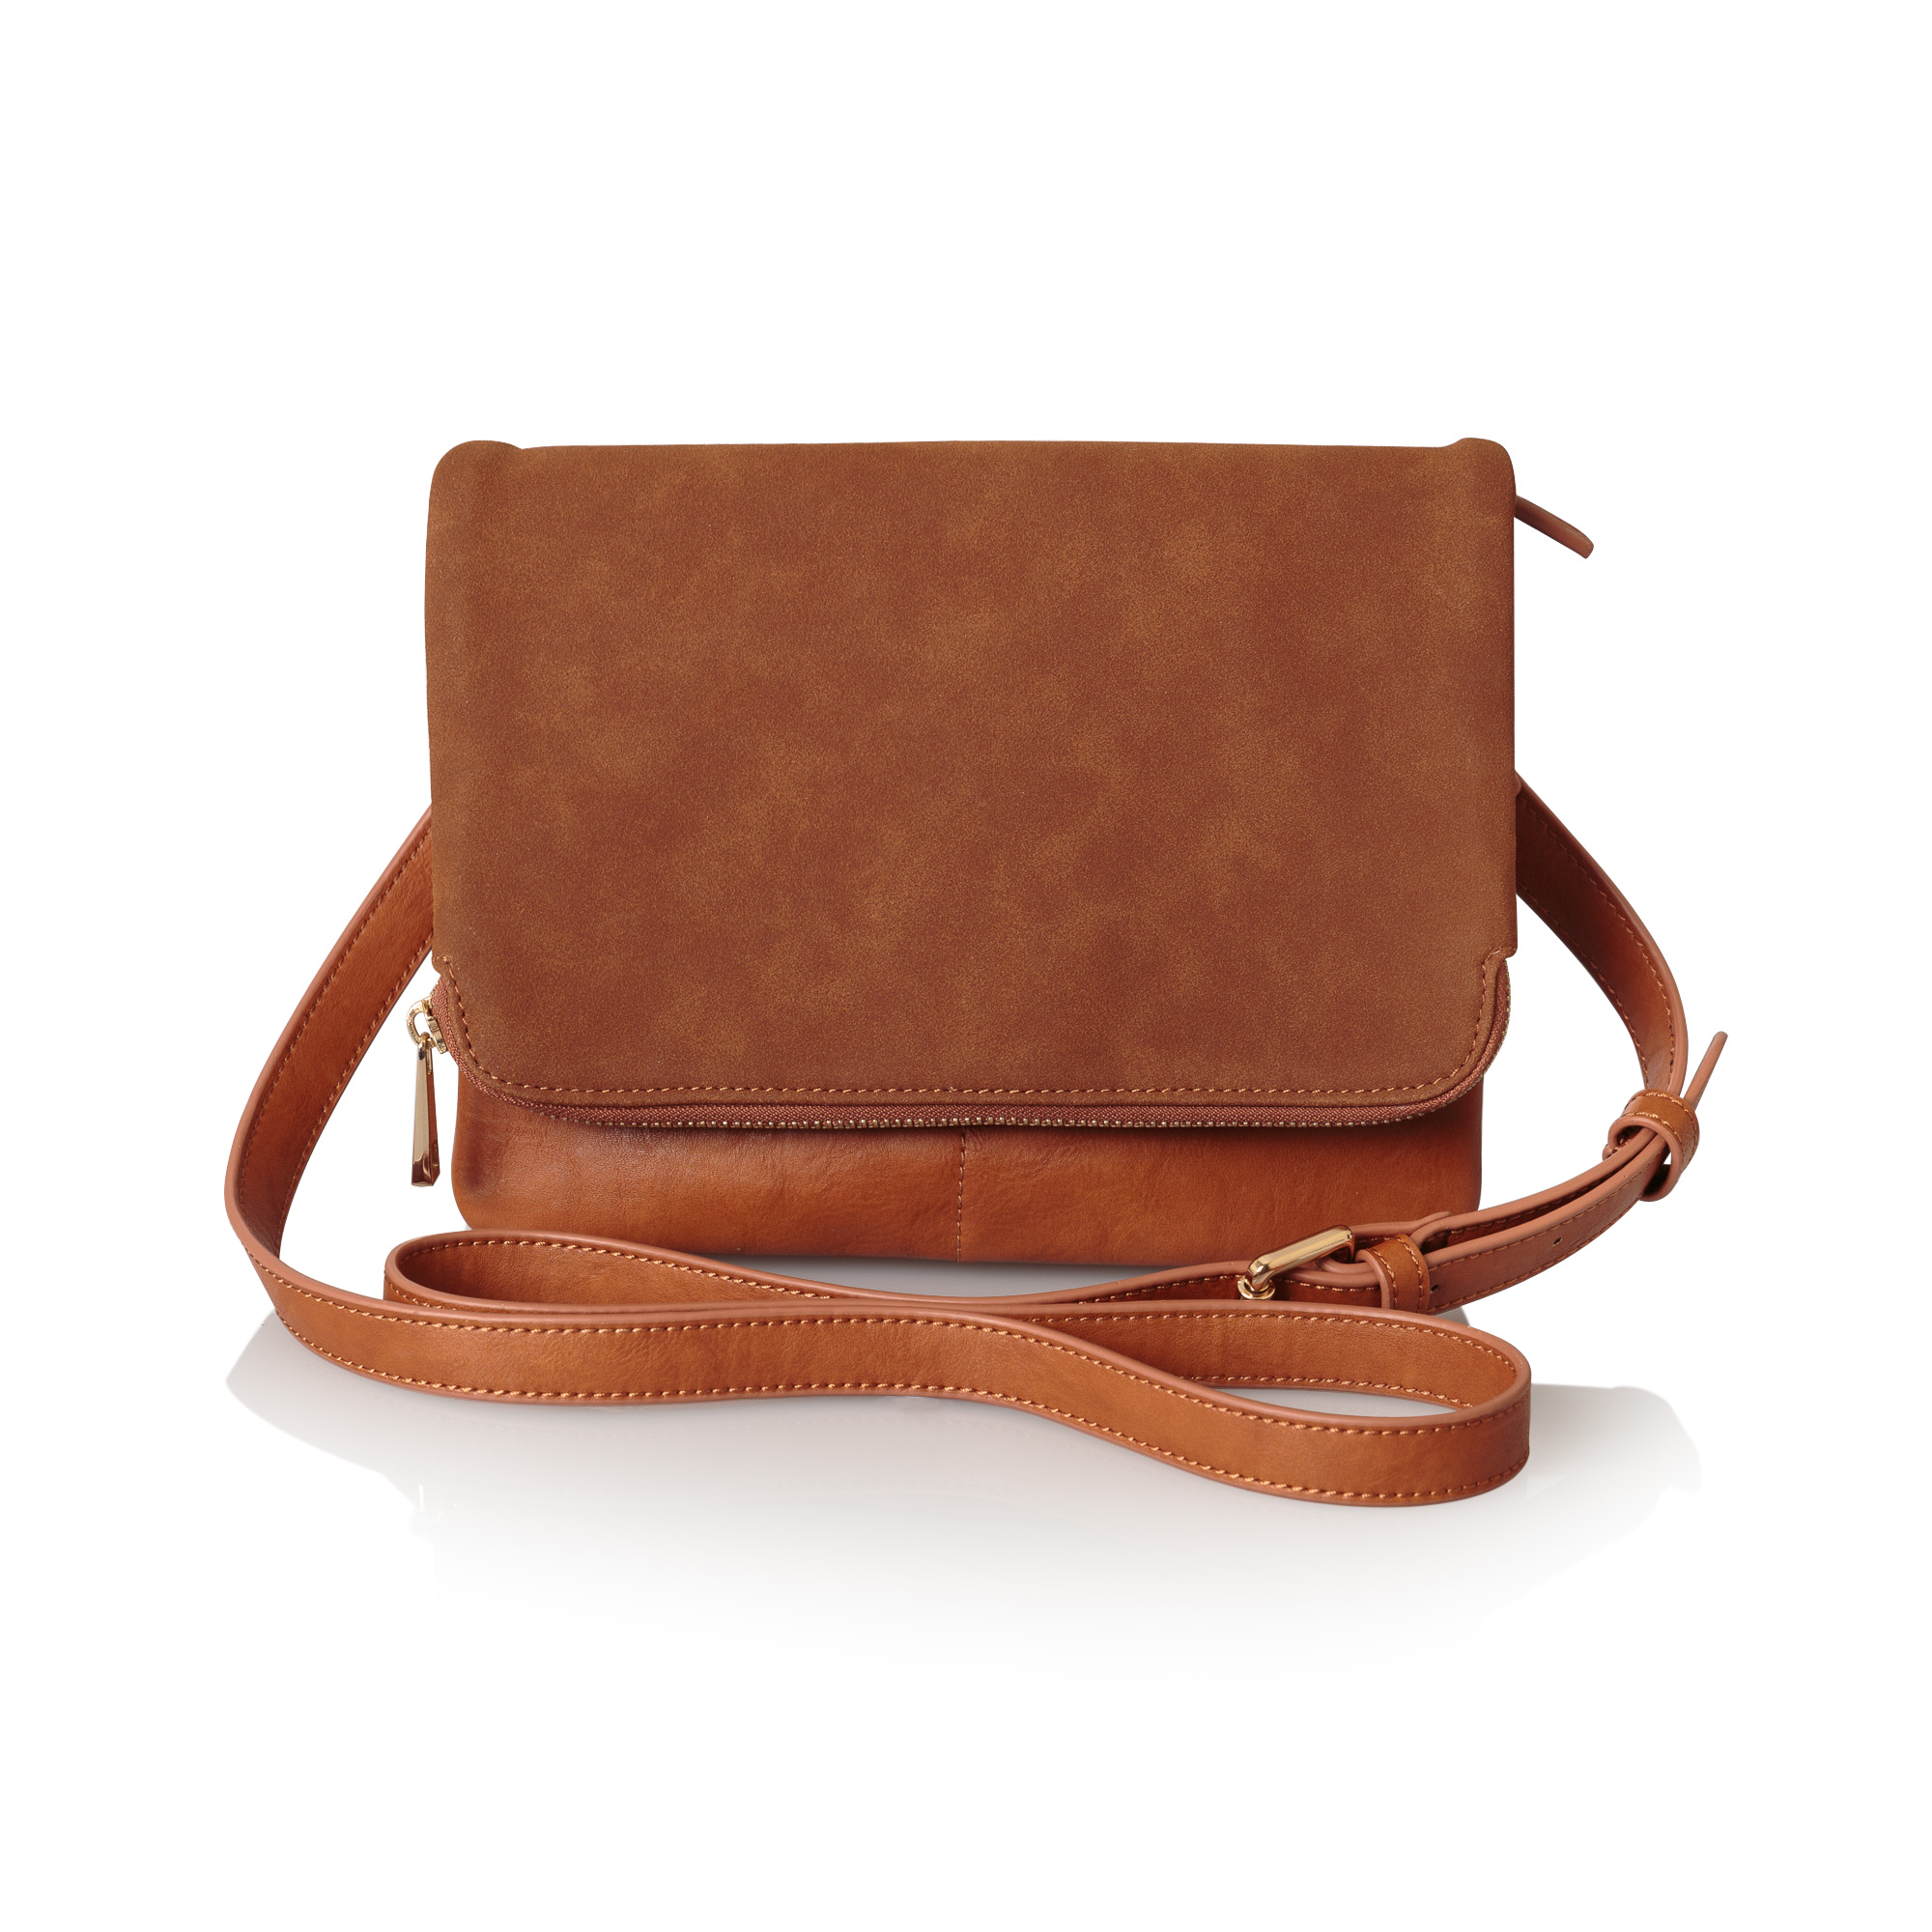 228b963247e2 Tan Crossbody Bag